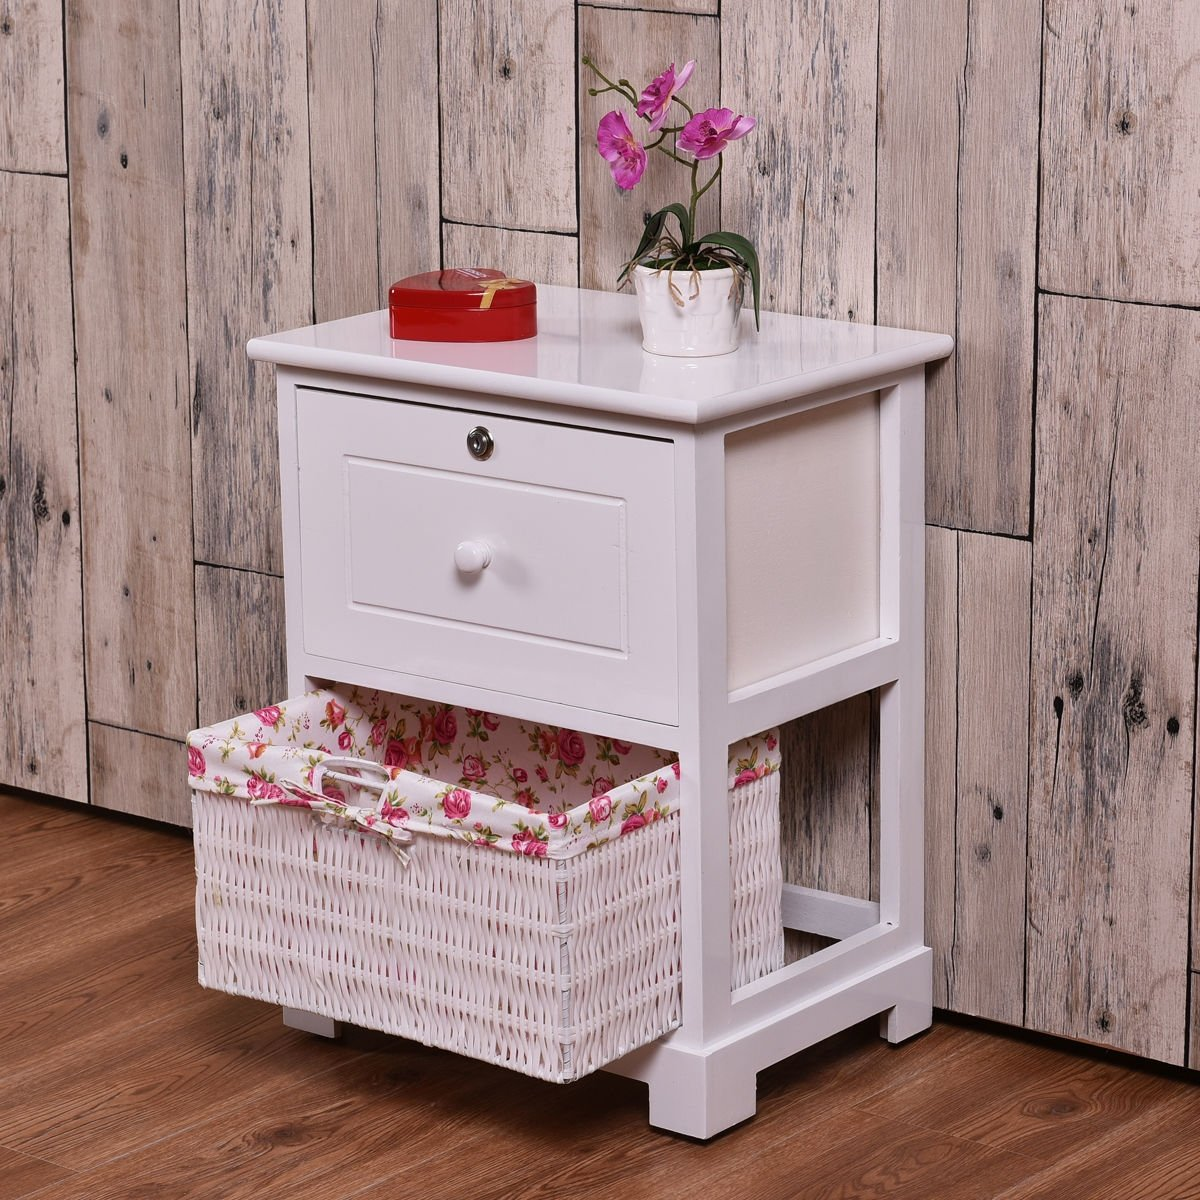 way white end side accent table night stand bedroom locked drawer basket with drawers free shipping today narrow glass pub bistro sets console behind couch marble set top